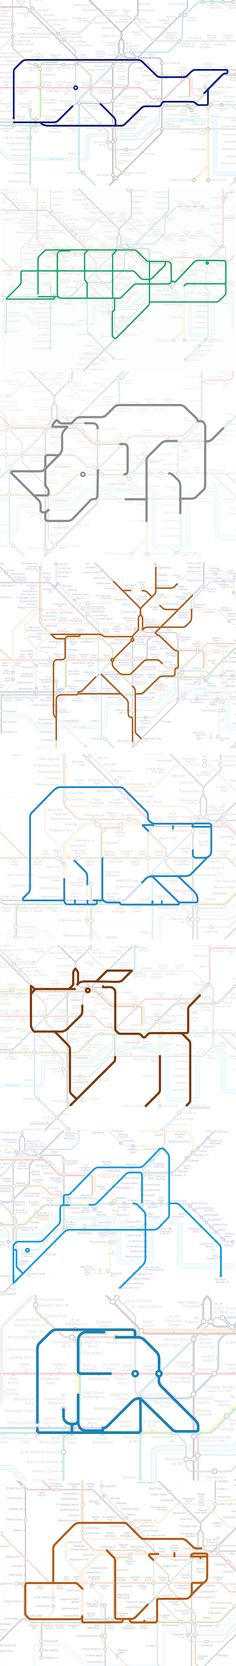 Sweet idea of Paul Middlewick's. As a pass time it might help familiarise right-brainers with London! Map Design, Print Design, Logo Design, Design Package, Information Design, 3d Prints, Design Graphique, Grafik Design, Graphic Design Inspiration